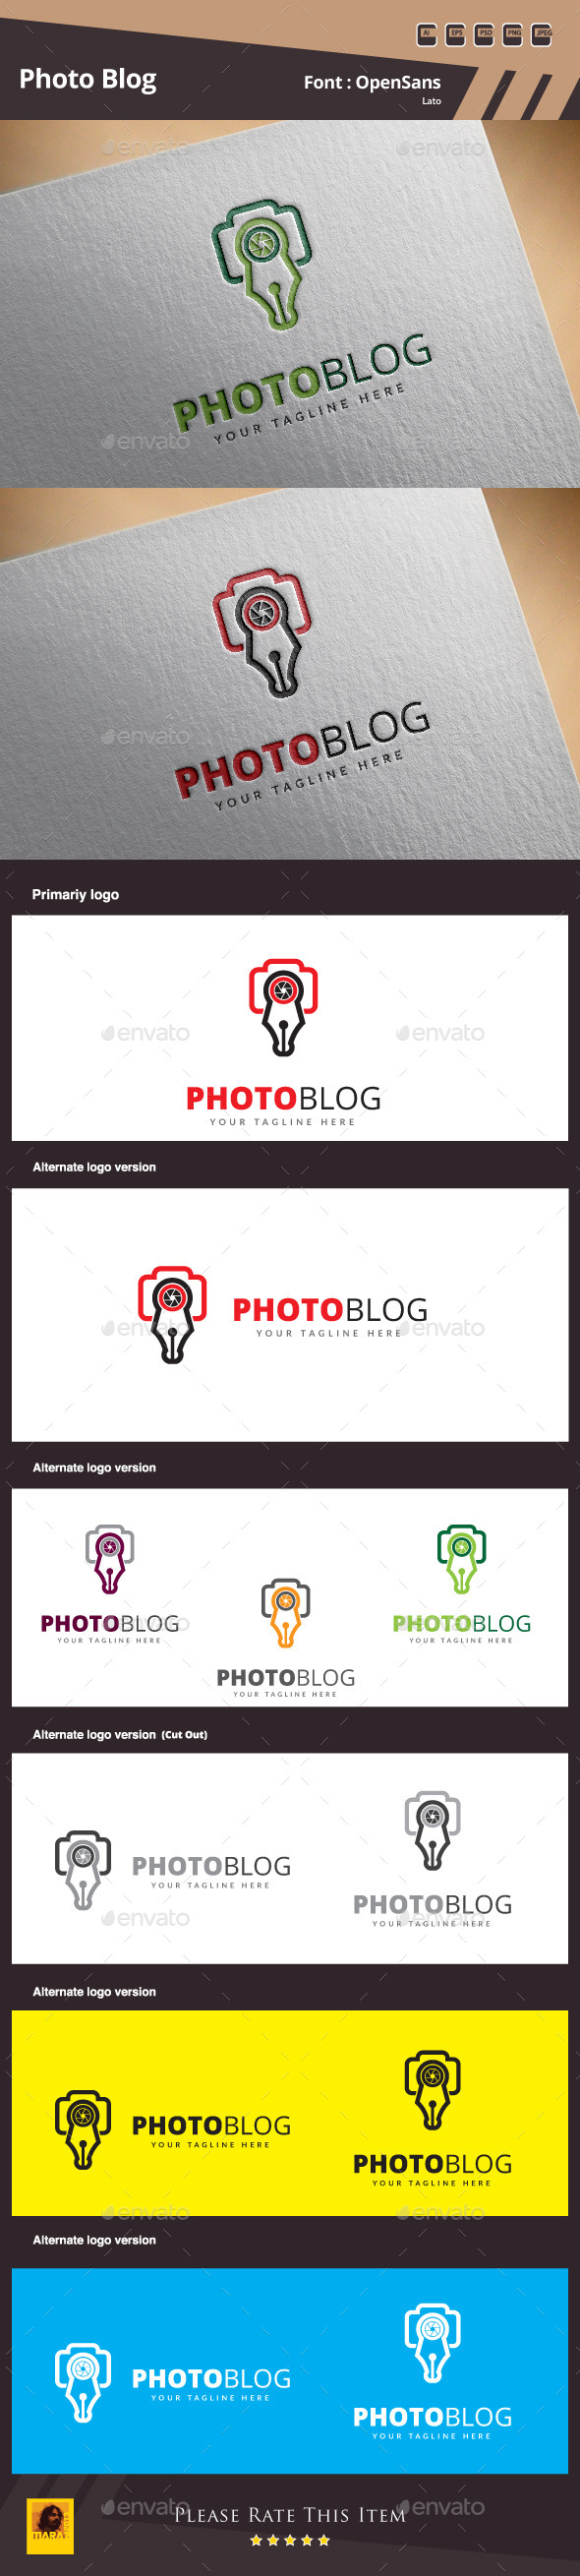 GraphicRiver Photo Blog Logo Template 11250425